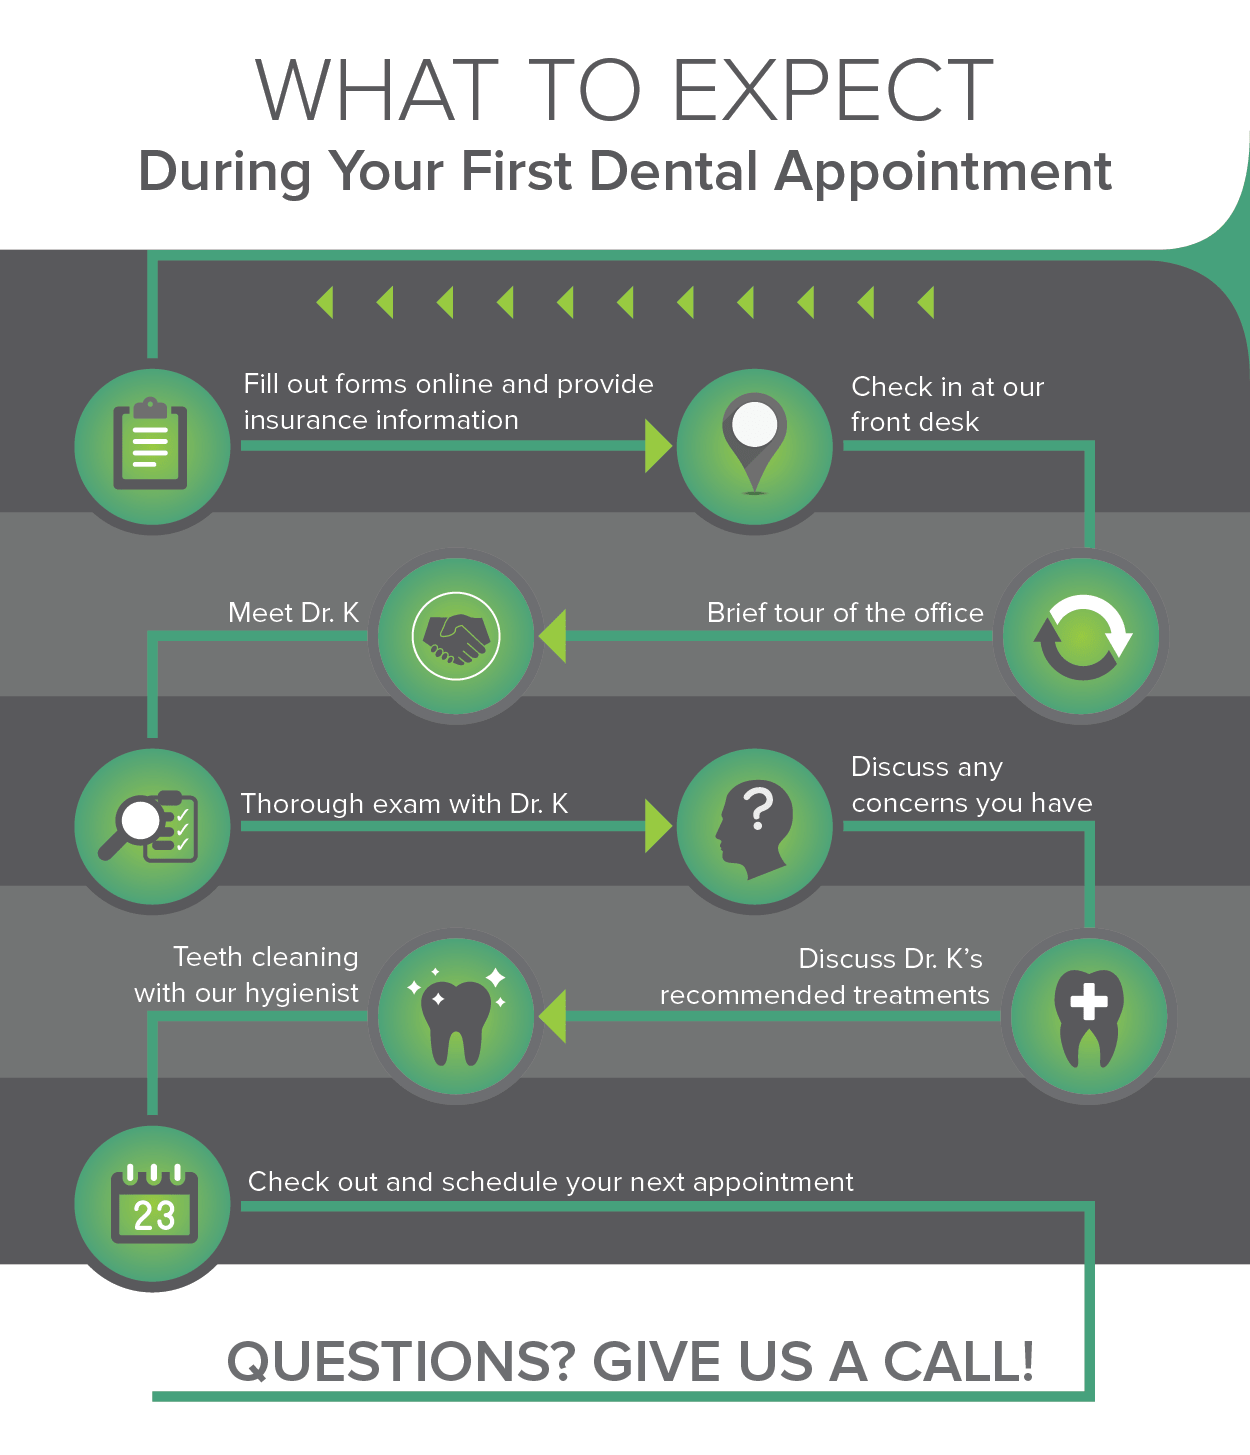 What to expect during your first dental appointment